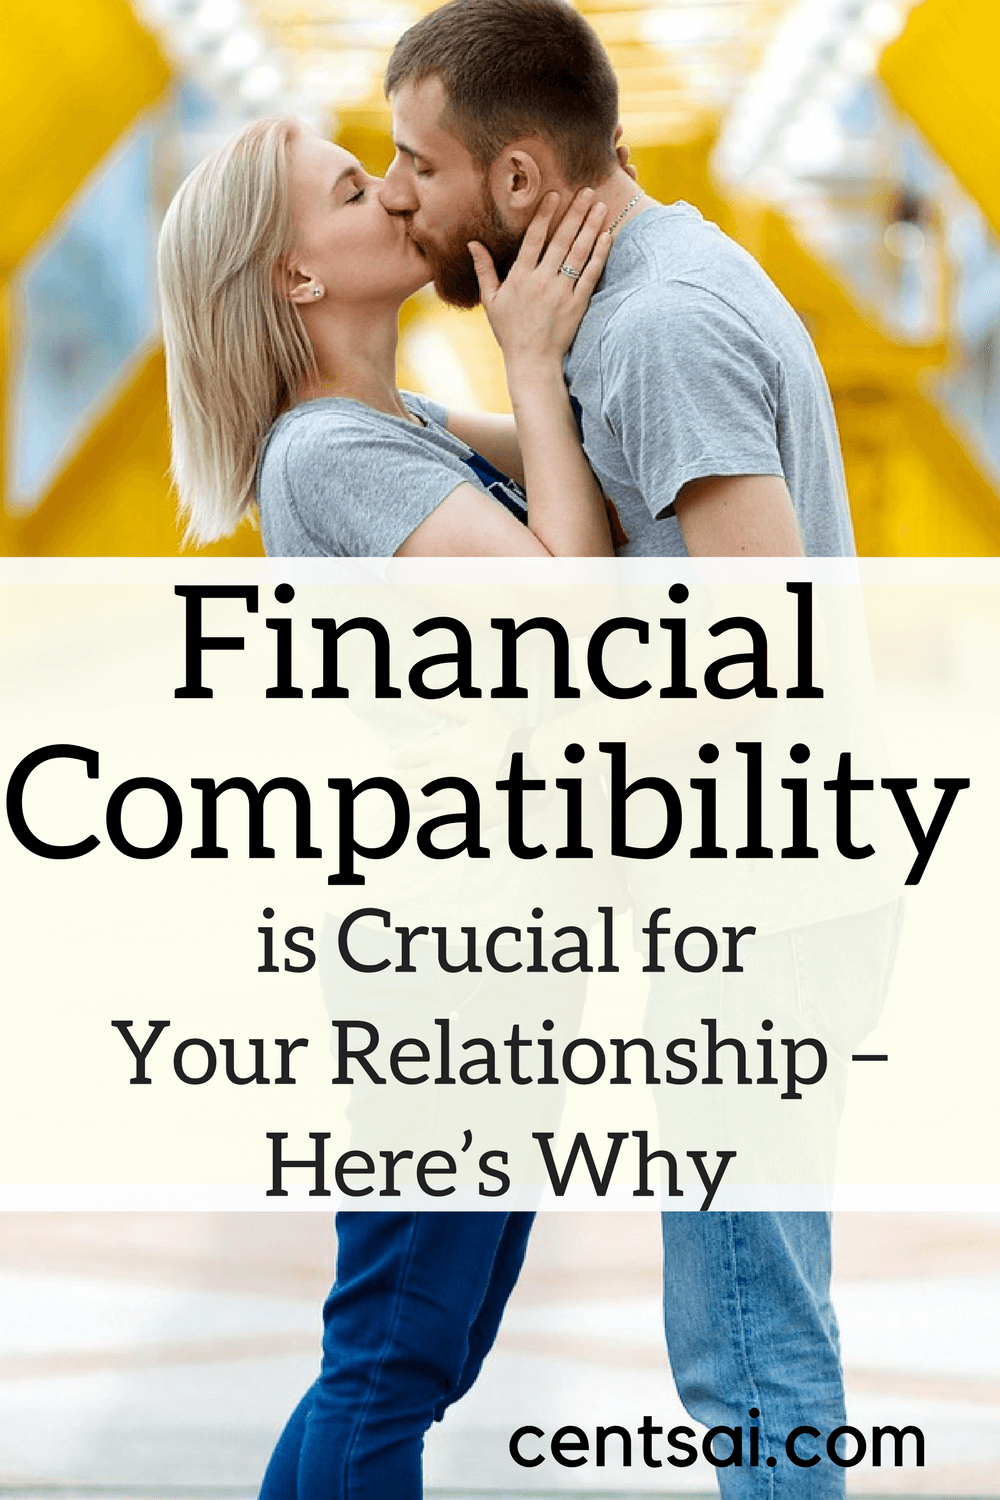 Financial Compatibility is Crucial for Your Relationship